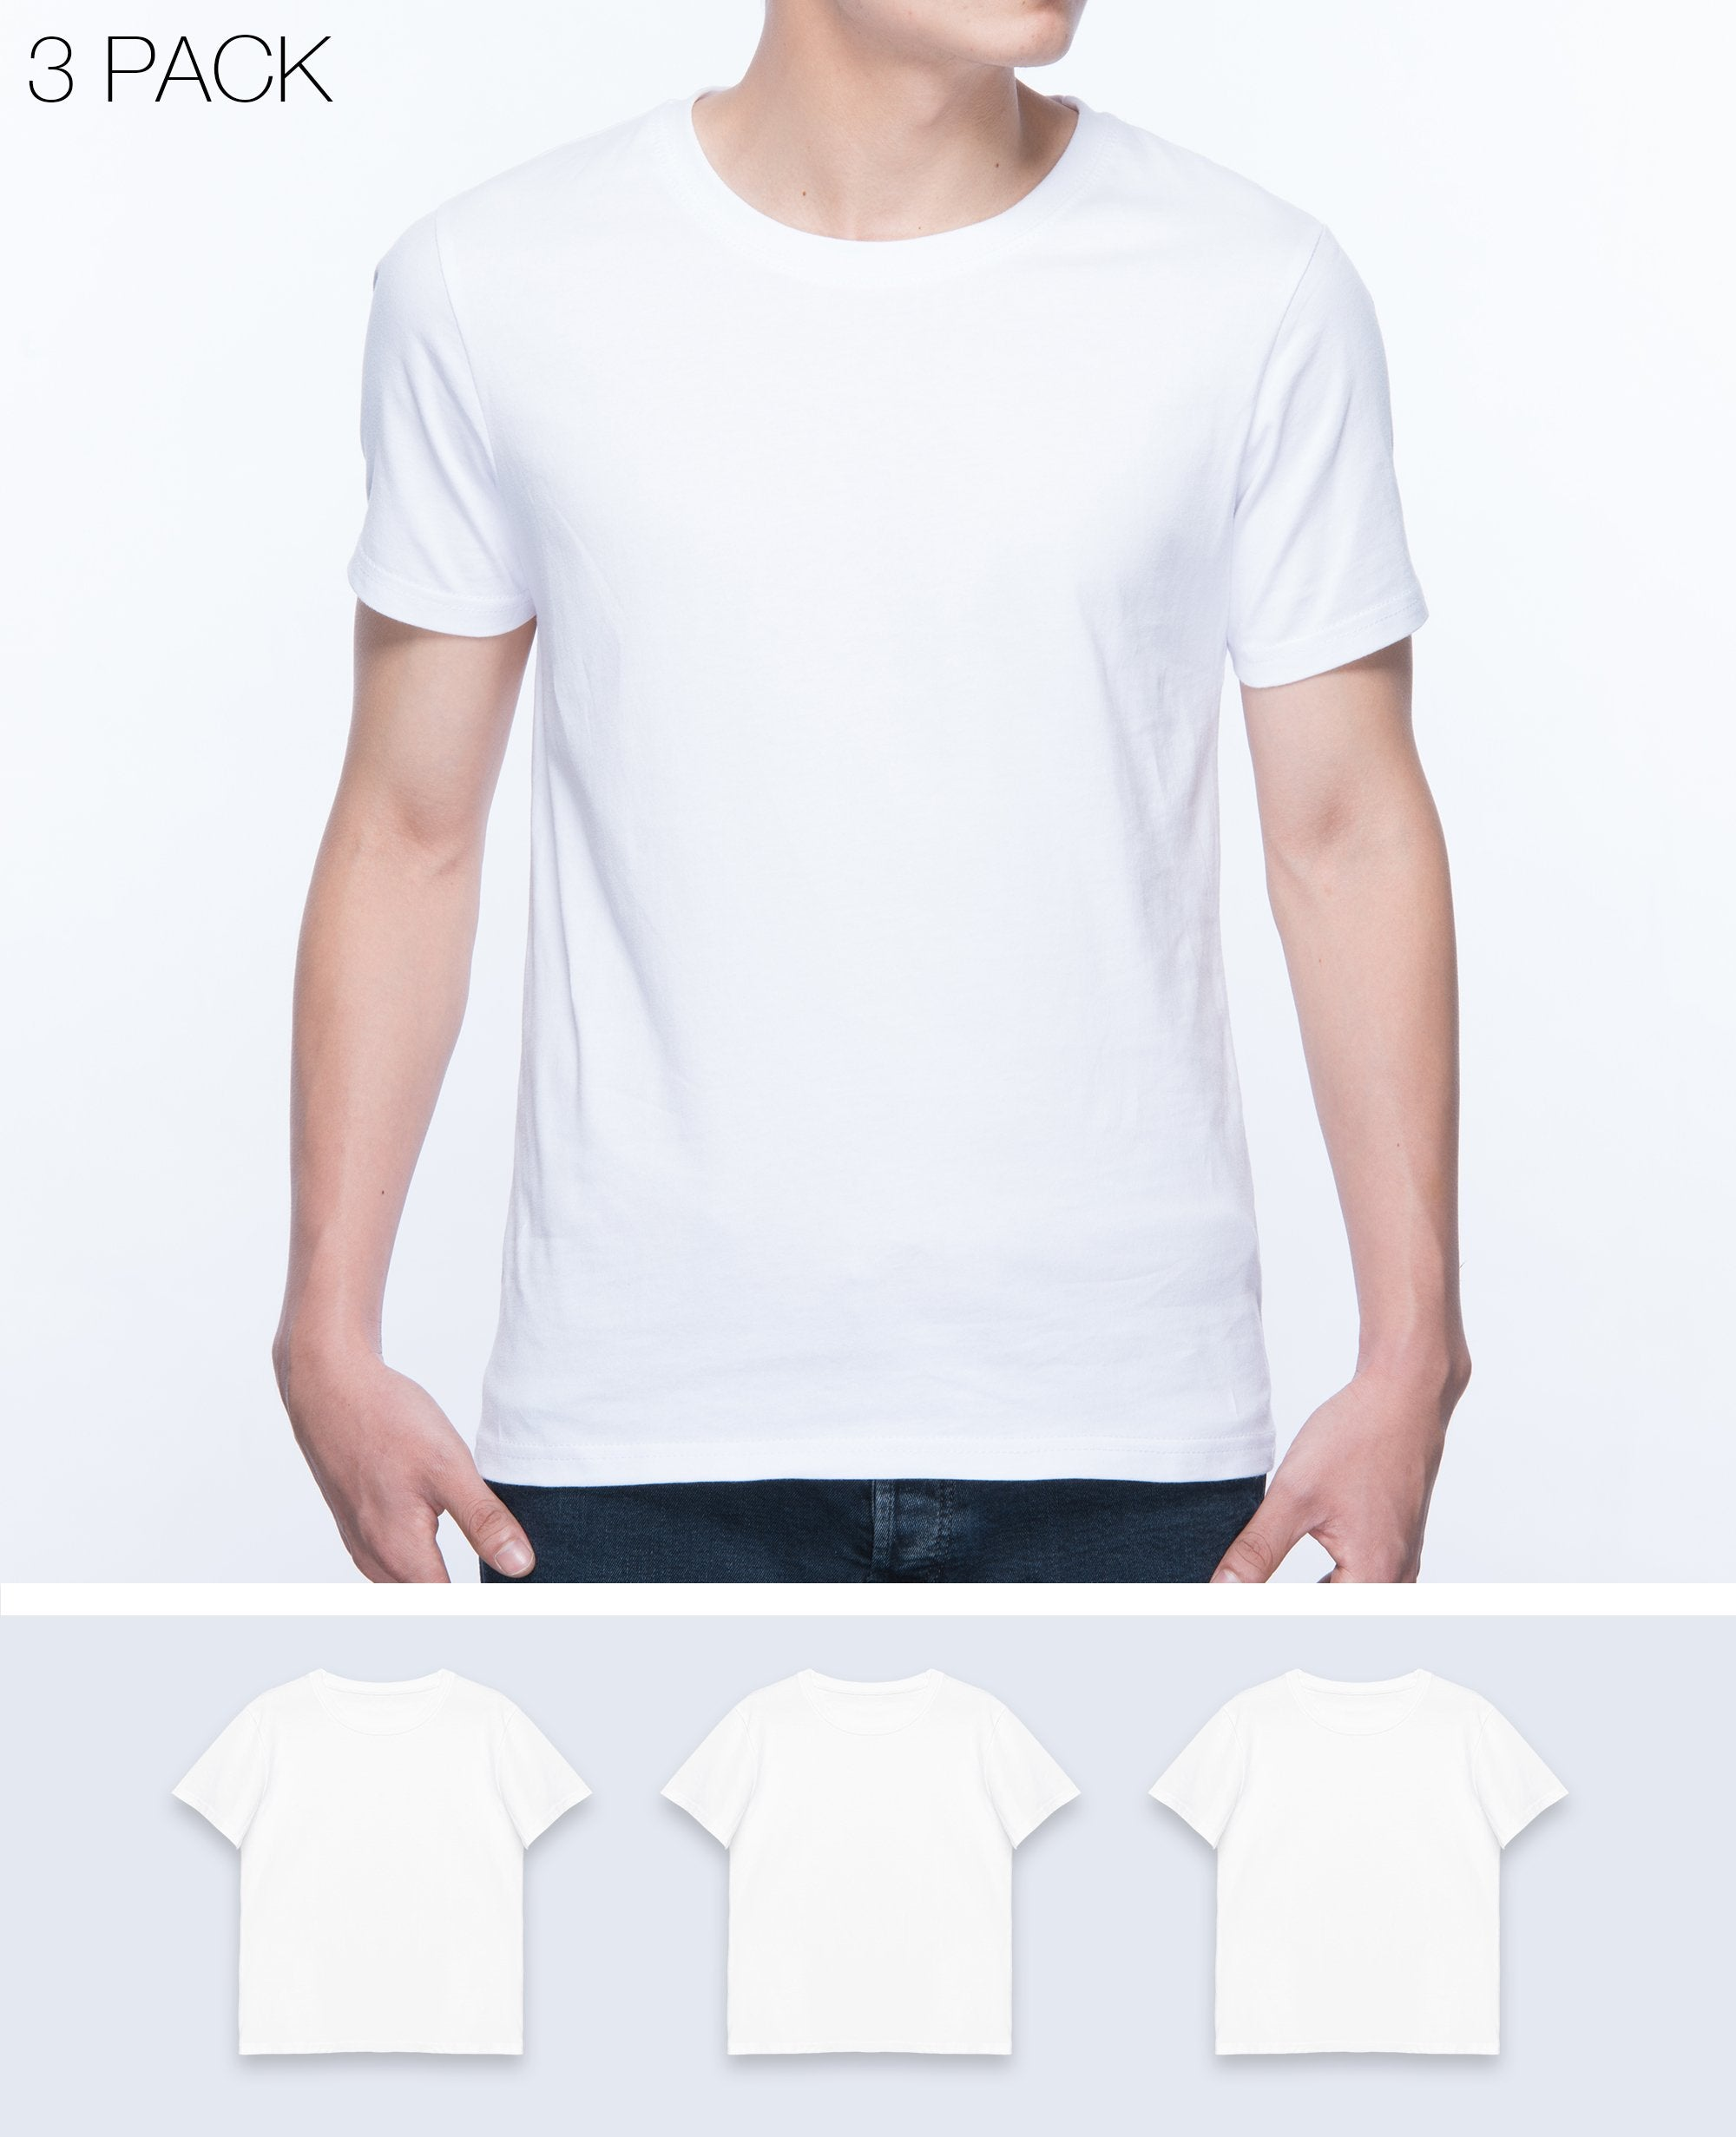 Basic T-shirt Men in White 3 pack - T-Shirts - BRANMA - BRANMA